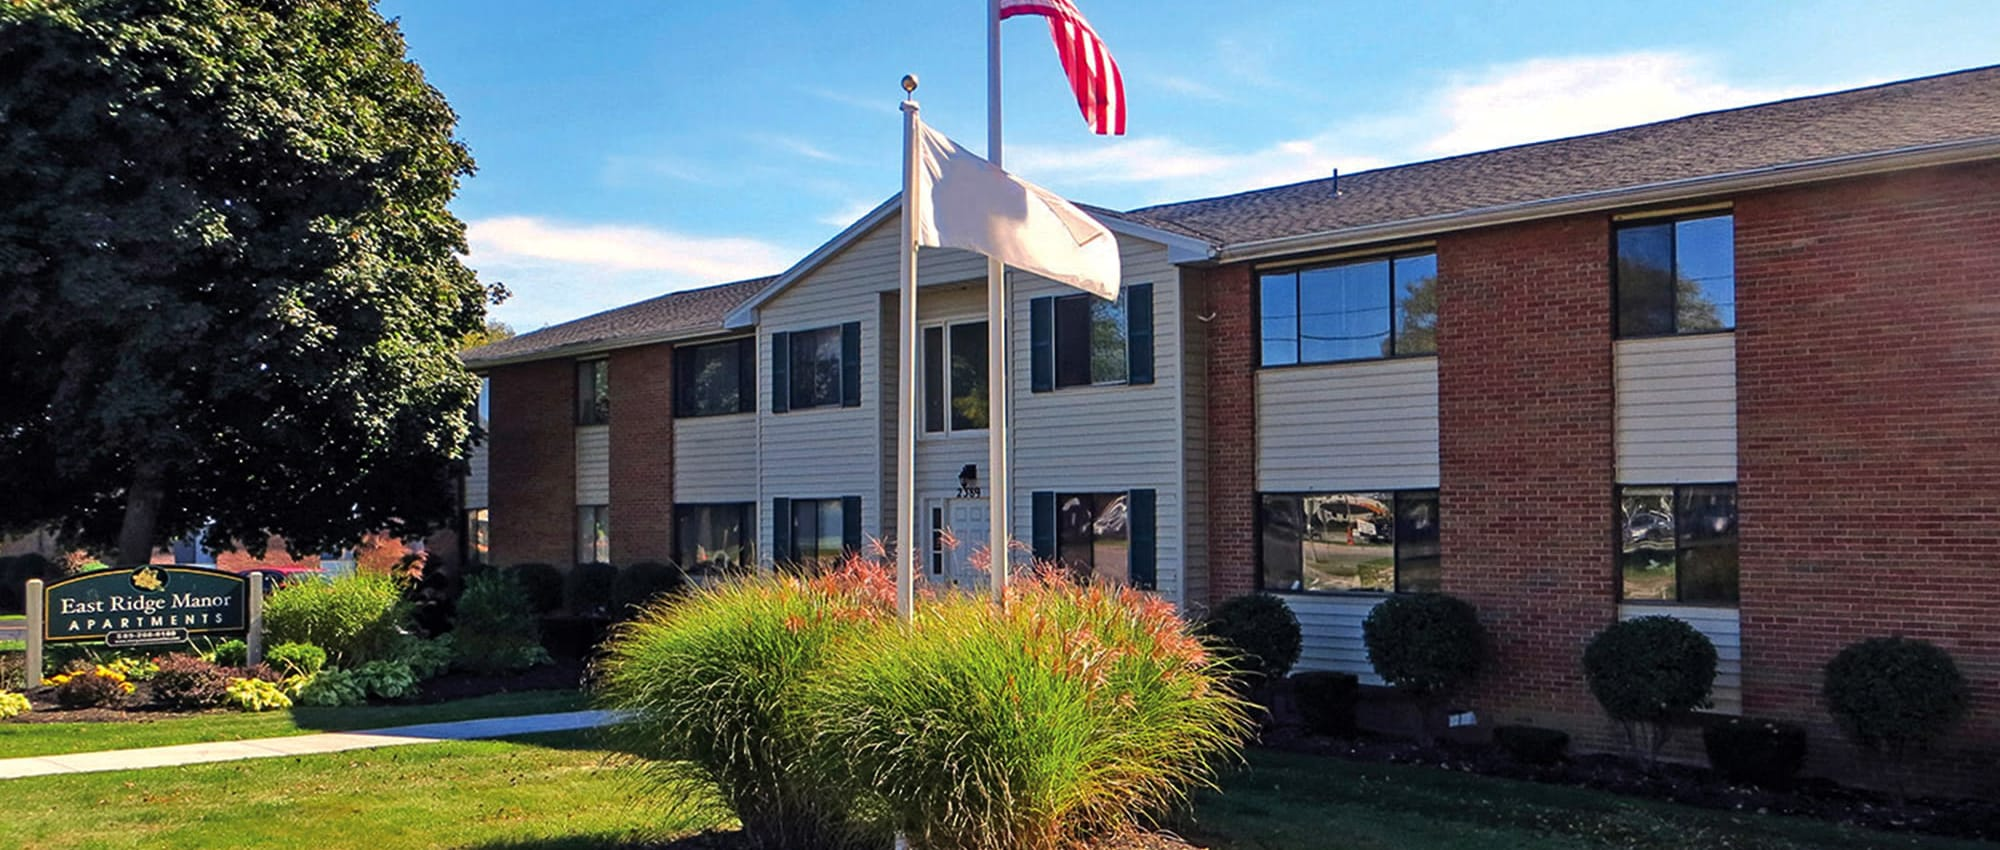 rochester ny apartments for rent  east ridge manor